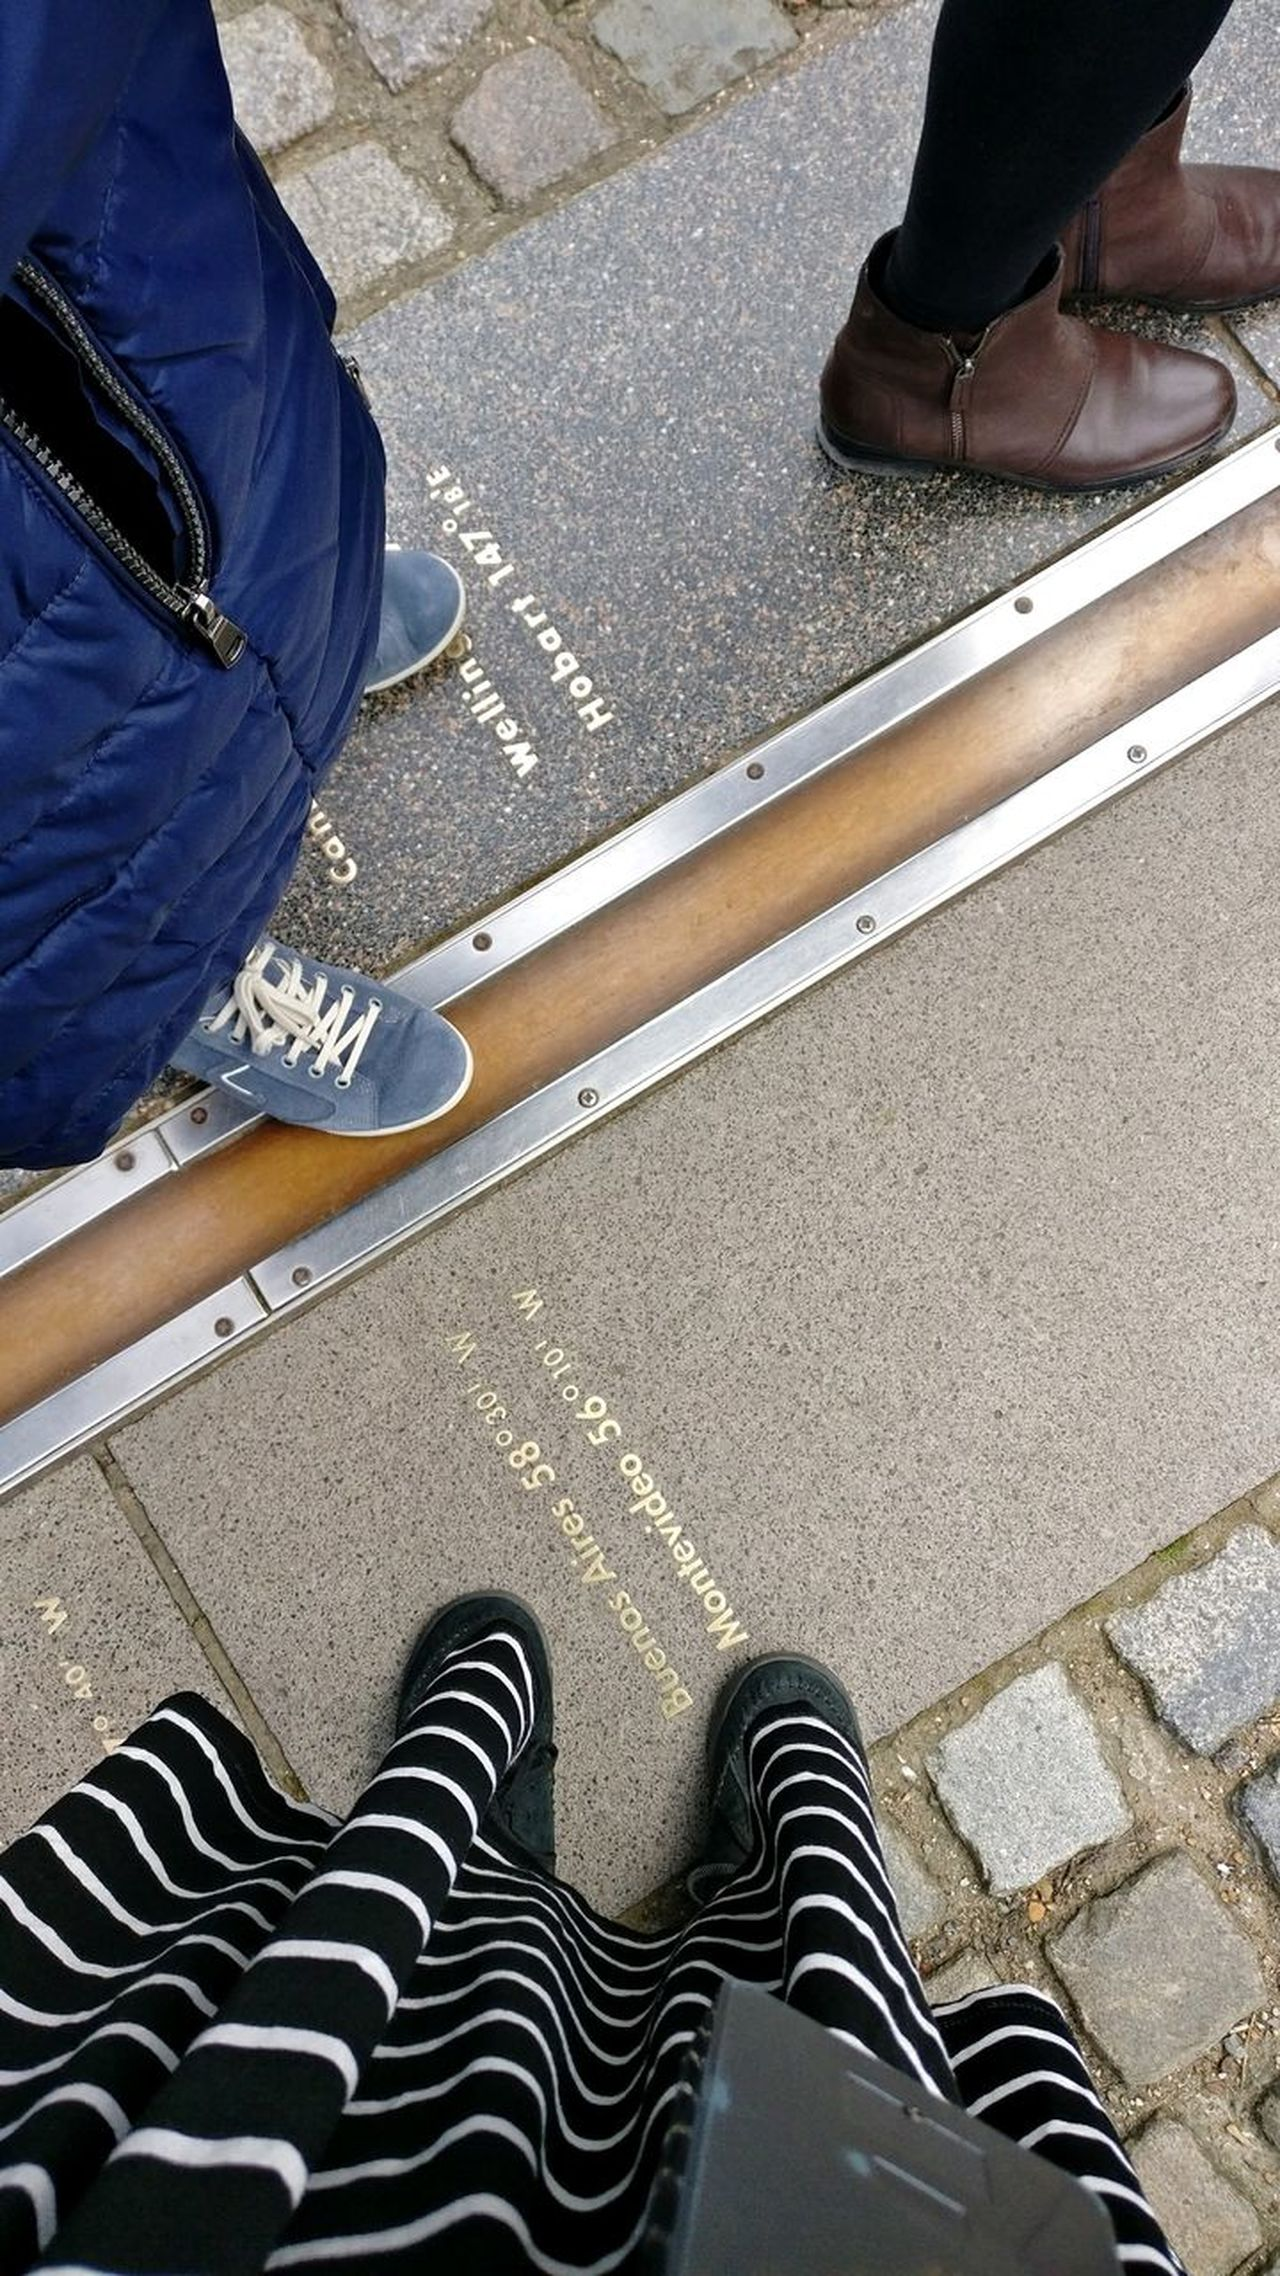 Greenwich Observatory Greenwich Greenwich Park Greenwich,London Prime Meridian Time Low Section Human Leg High Angle View Shoe Human Body Part Human Foot Real People Standing